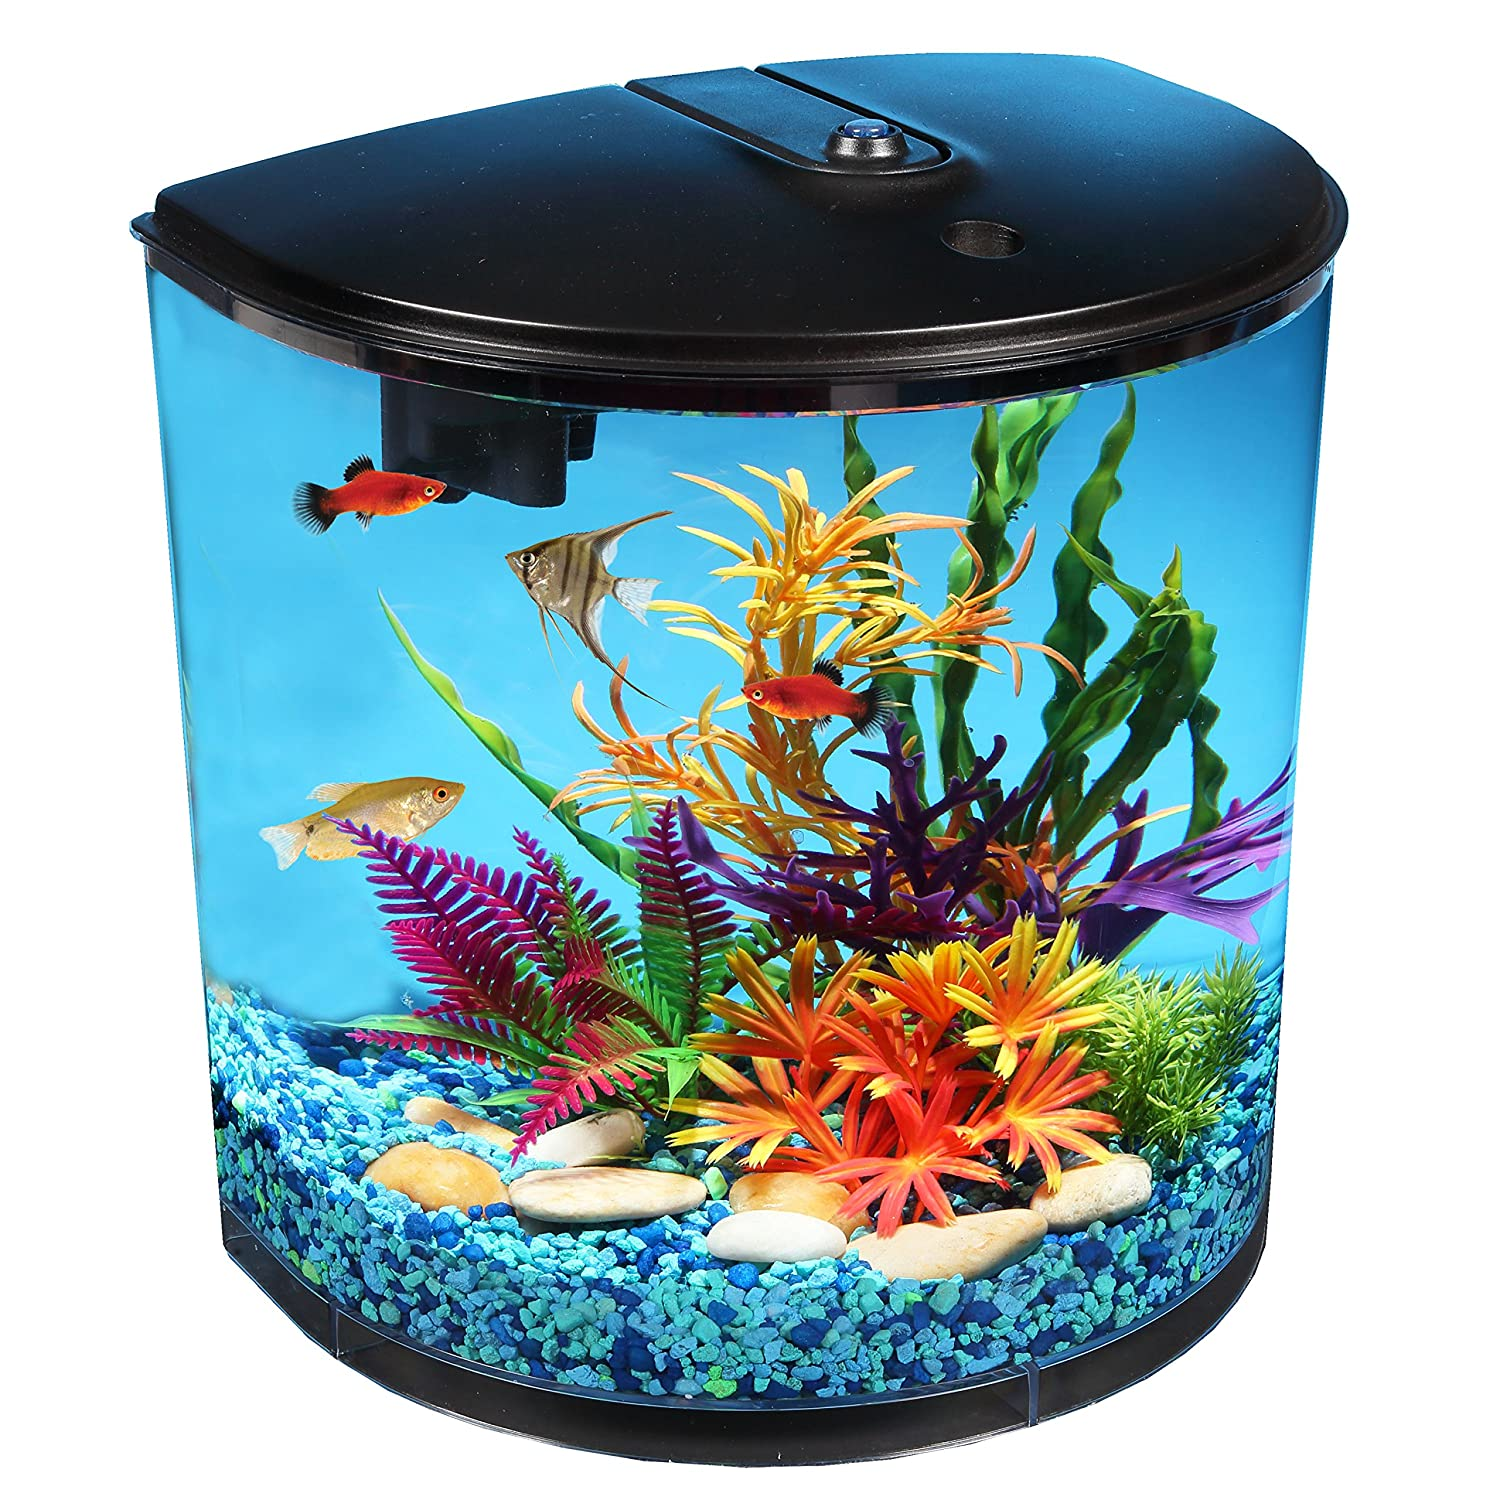 Amazon AquaView 3 5 Gallon Fish Tank with Power Filter and LED